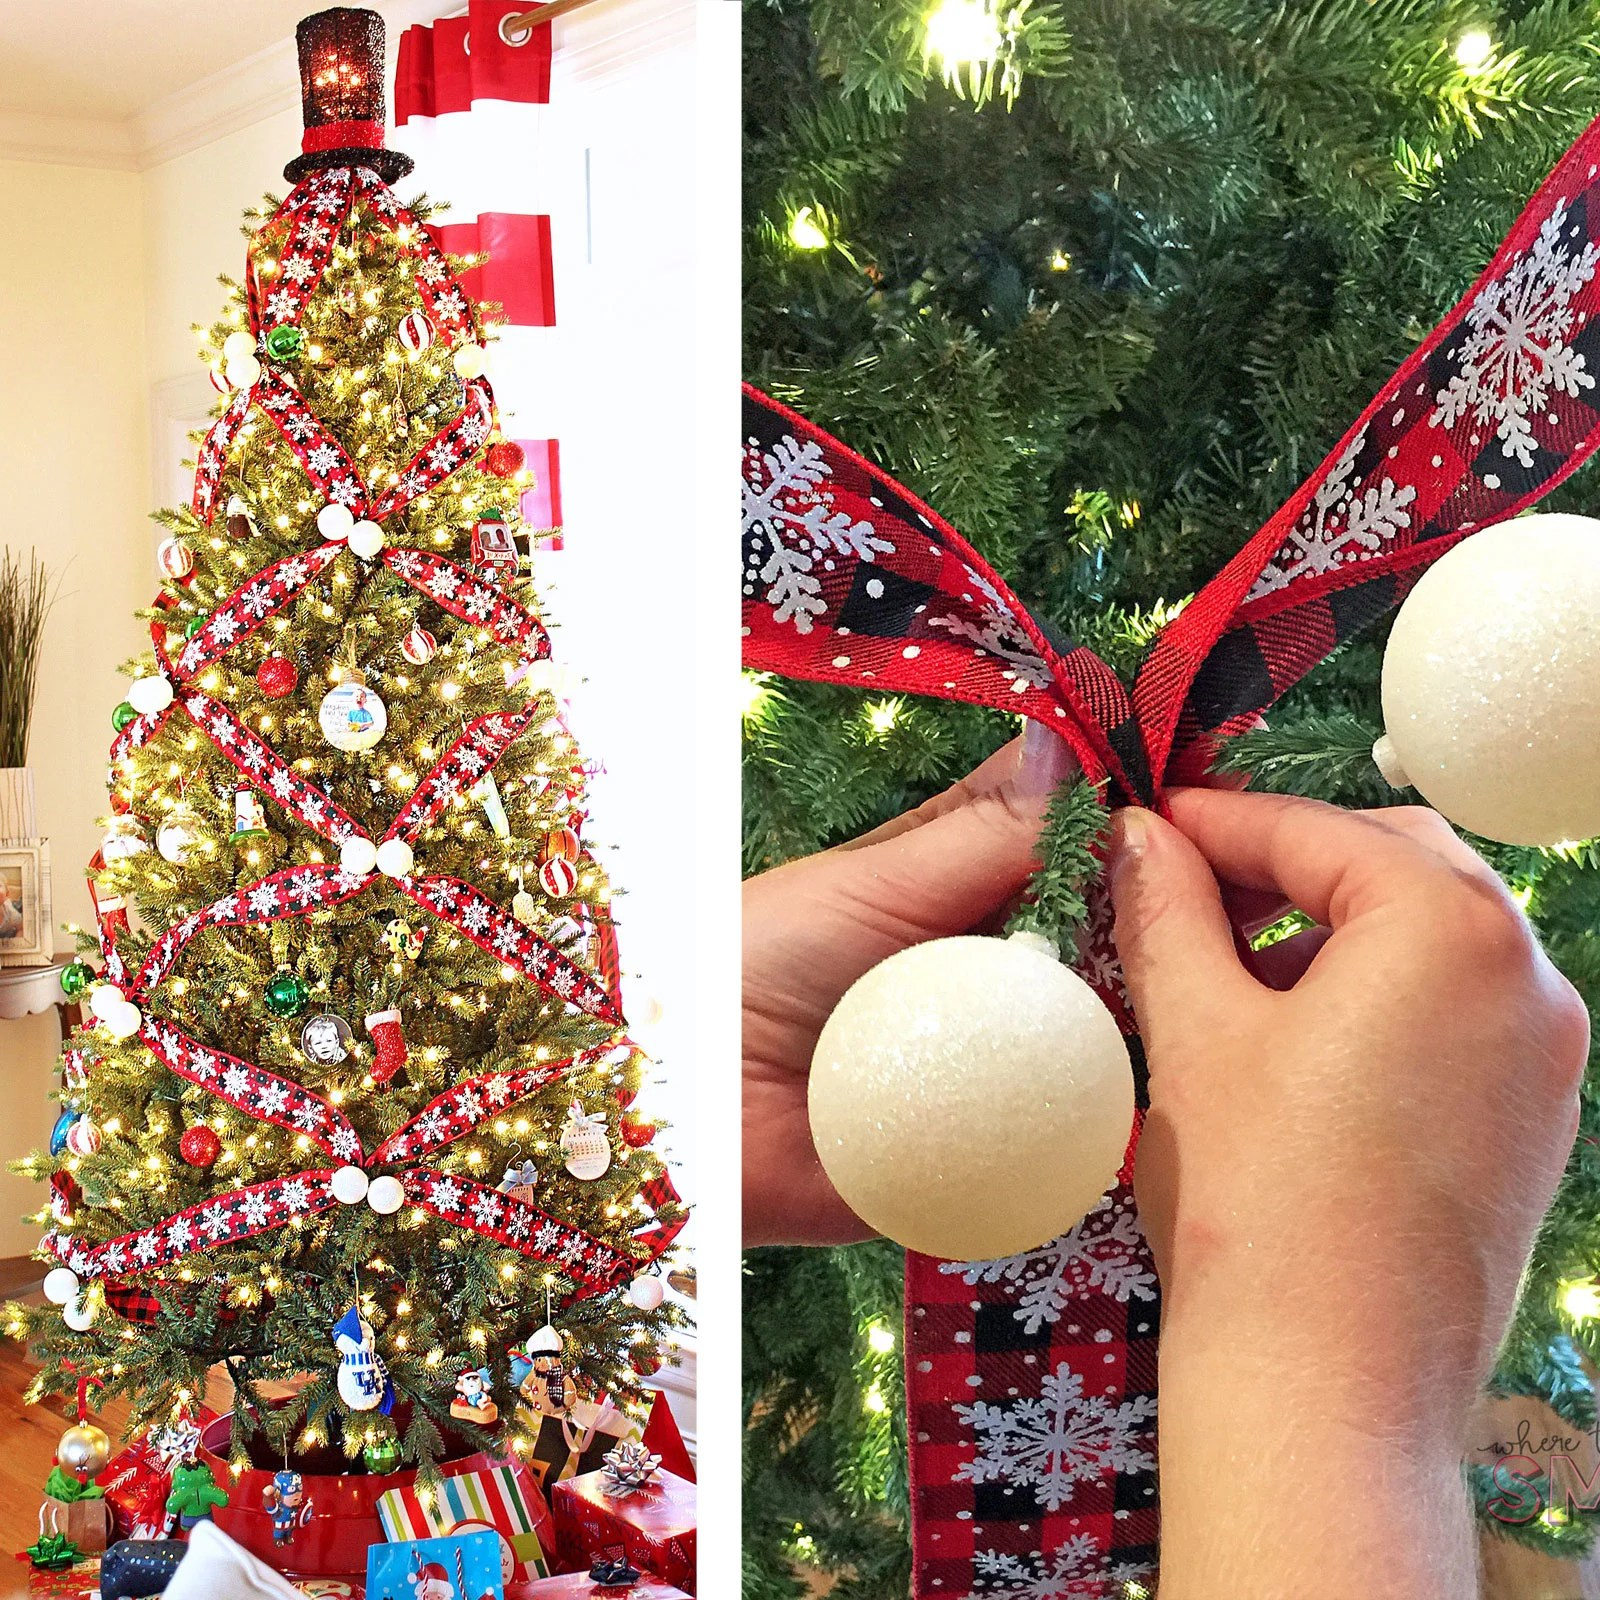 How To Crisscross Ribbon On A Christmas Tree For A Unique Look